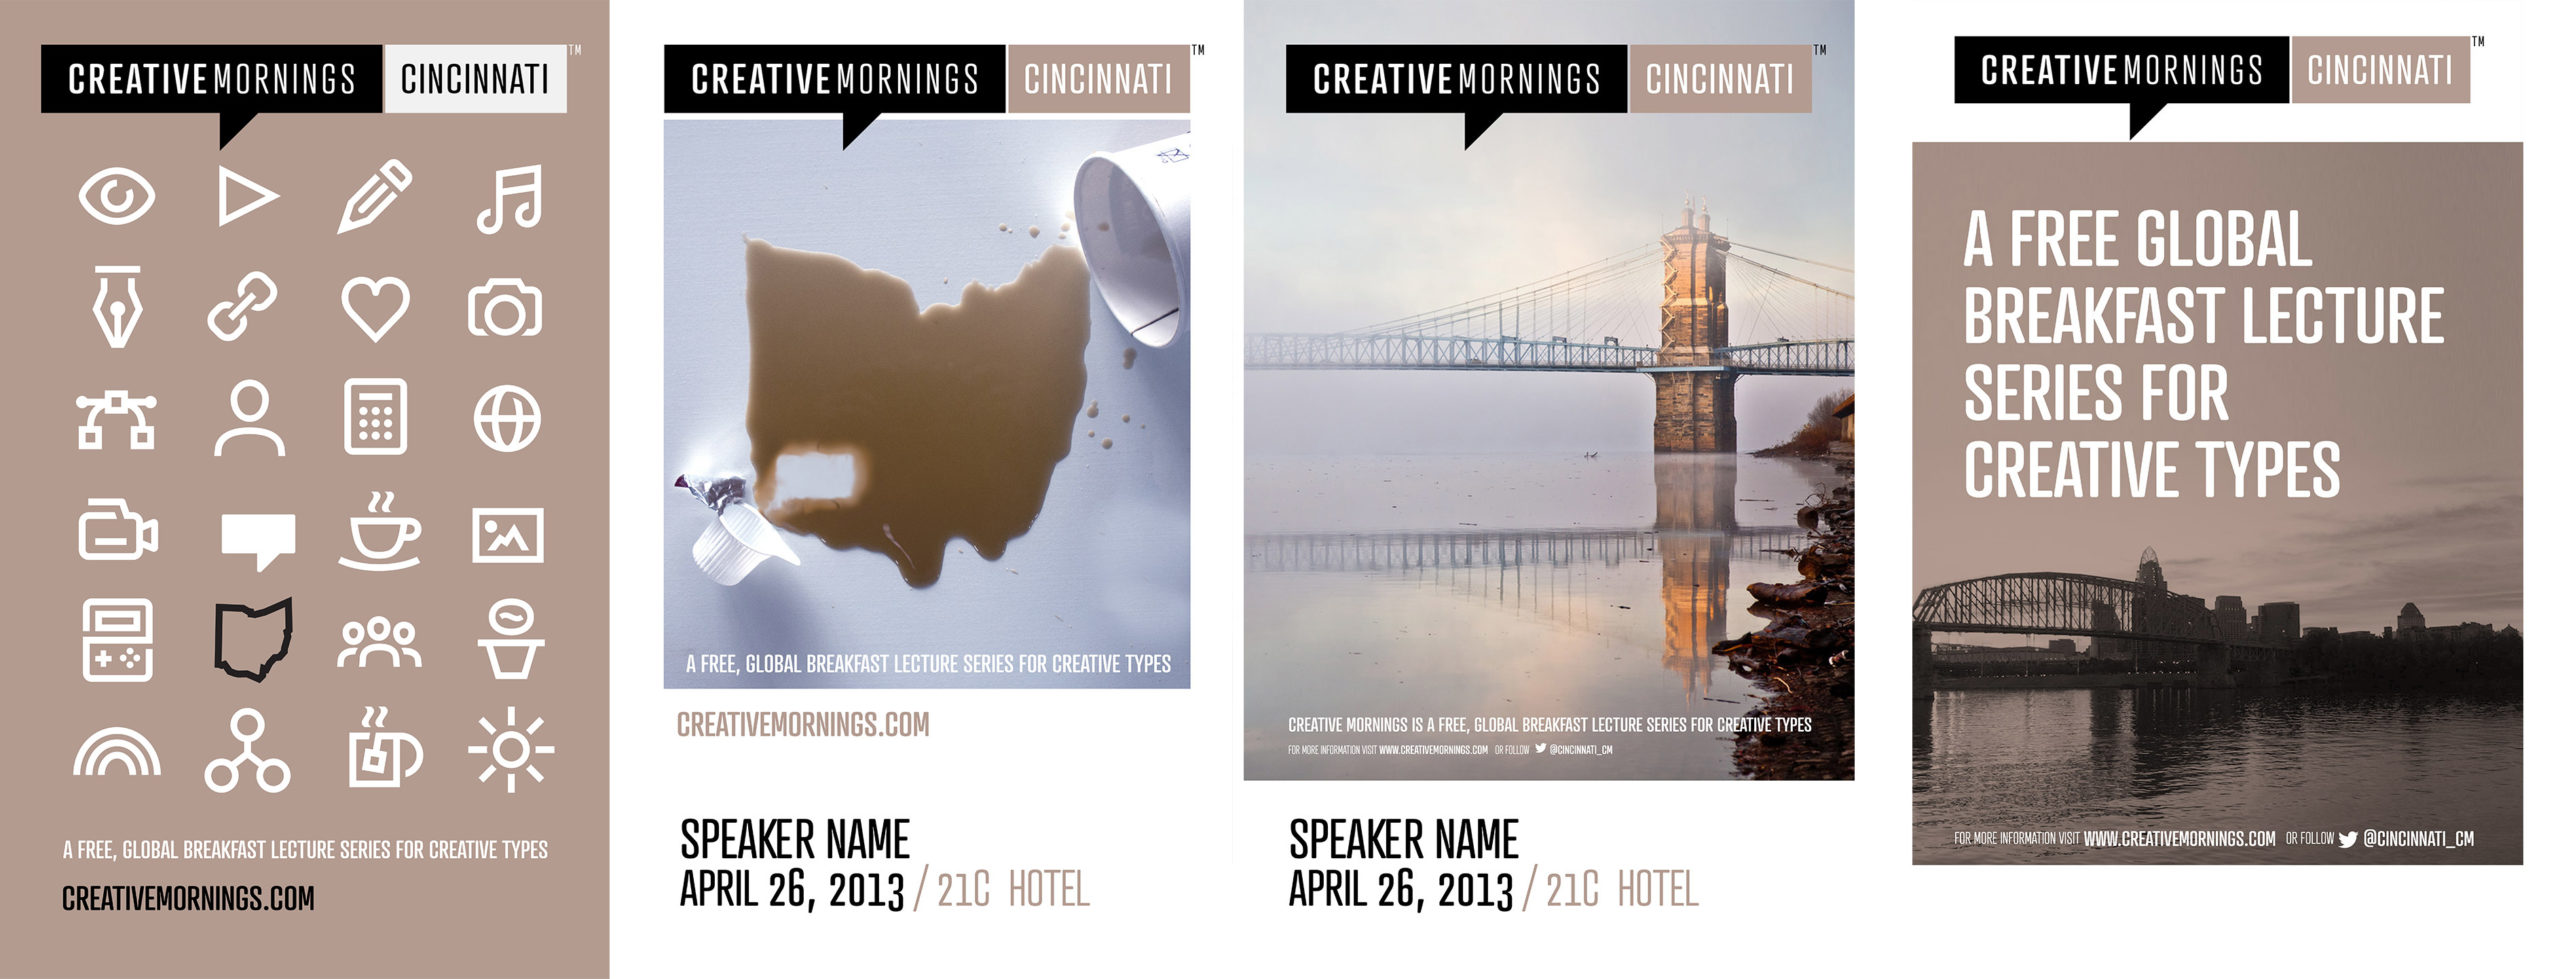 Creative Mornings Poster Concepts for Cincinnati